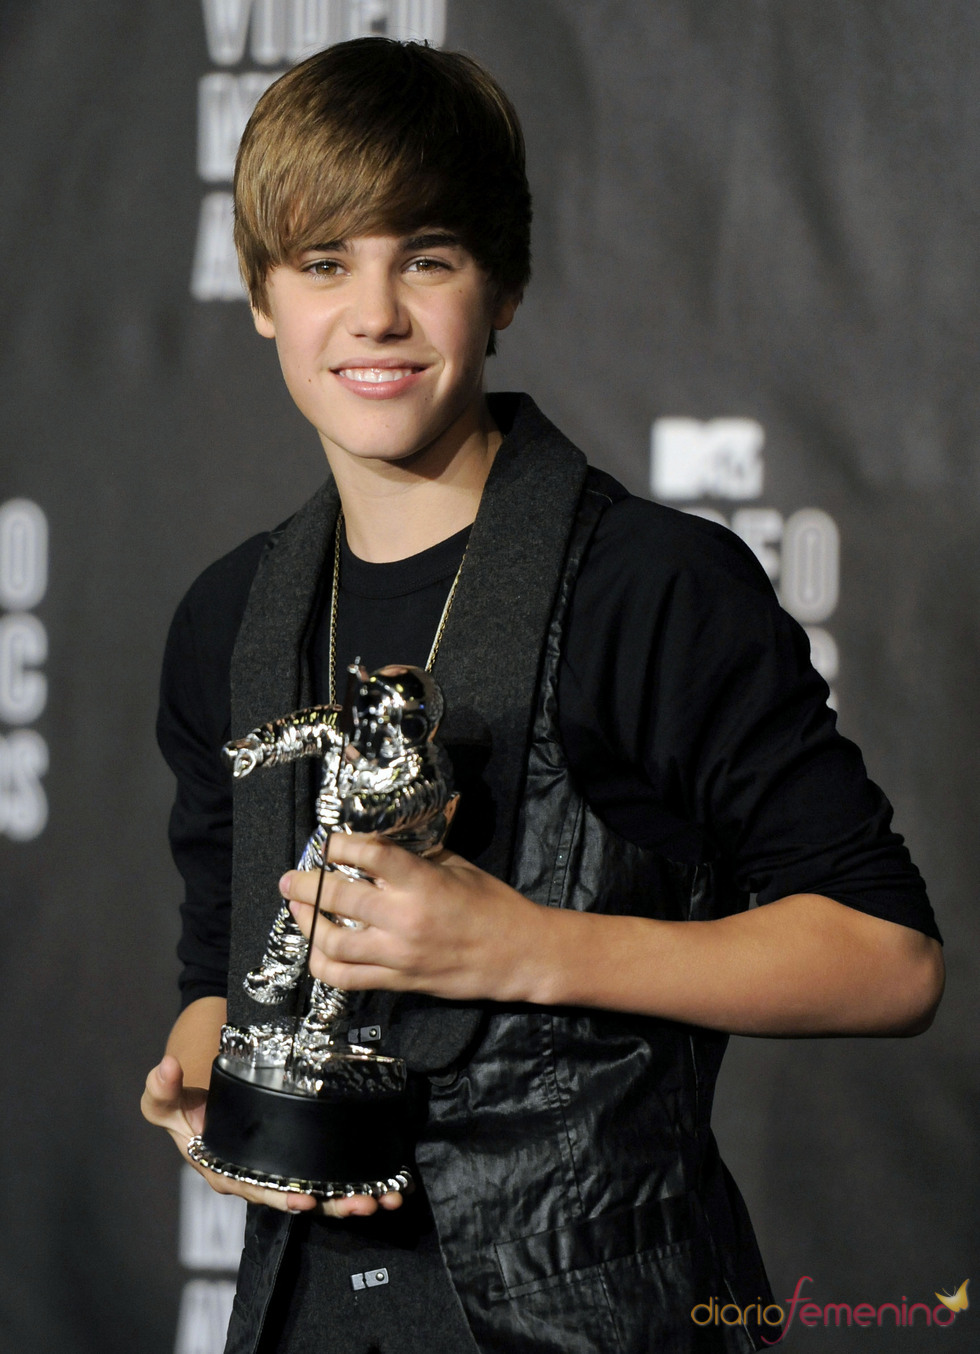 Justin Bieber, premiado en los MTV Video Music Awards 2010 джастин бибер